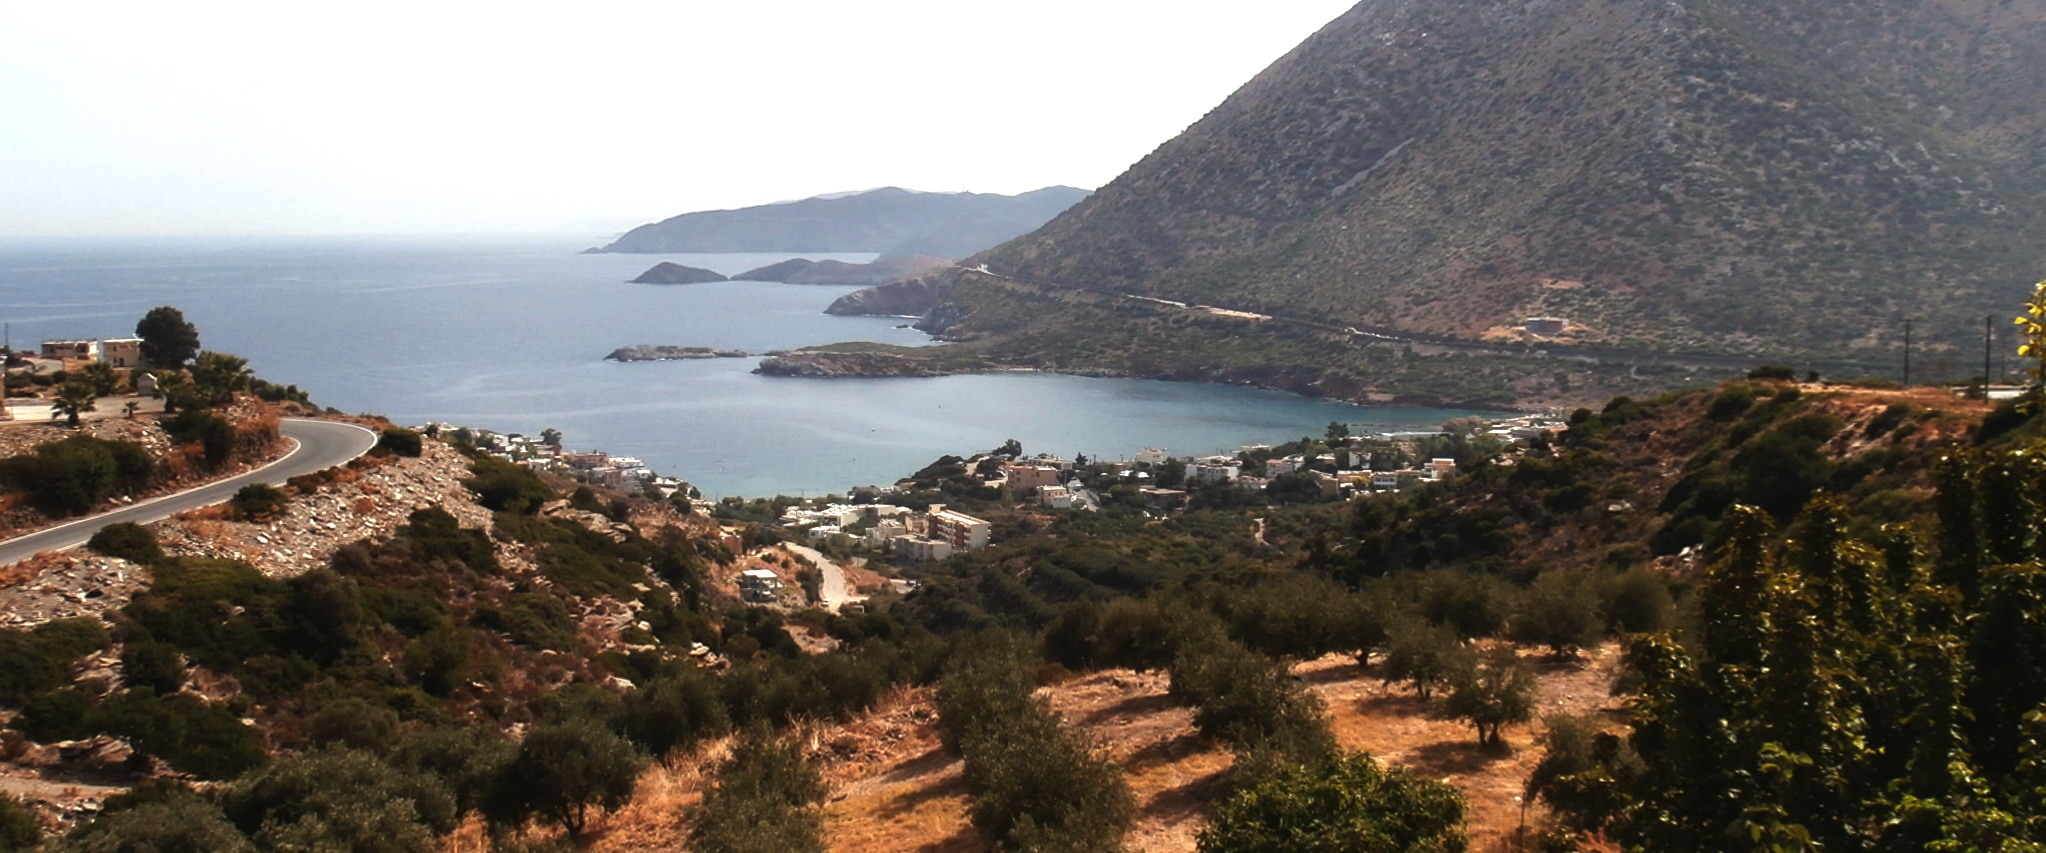 Kalli'mera Kríti! CRETE – Flowing with Olive Oil and Honey – PART 1